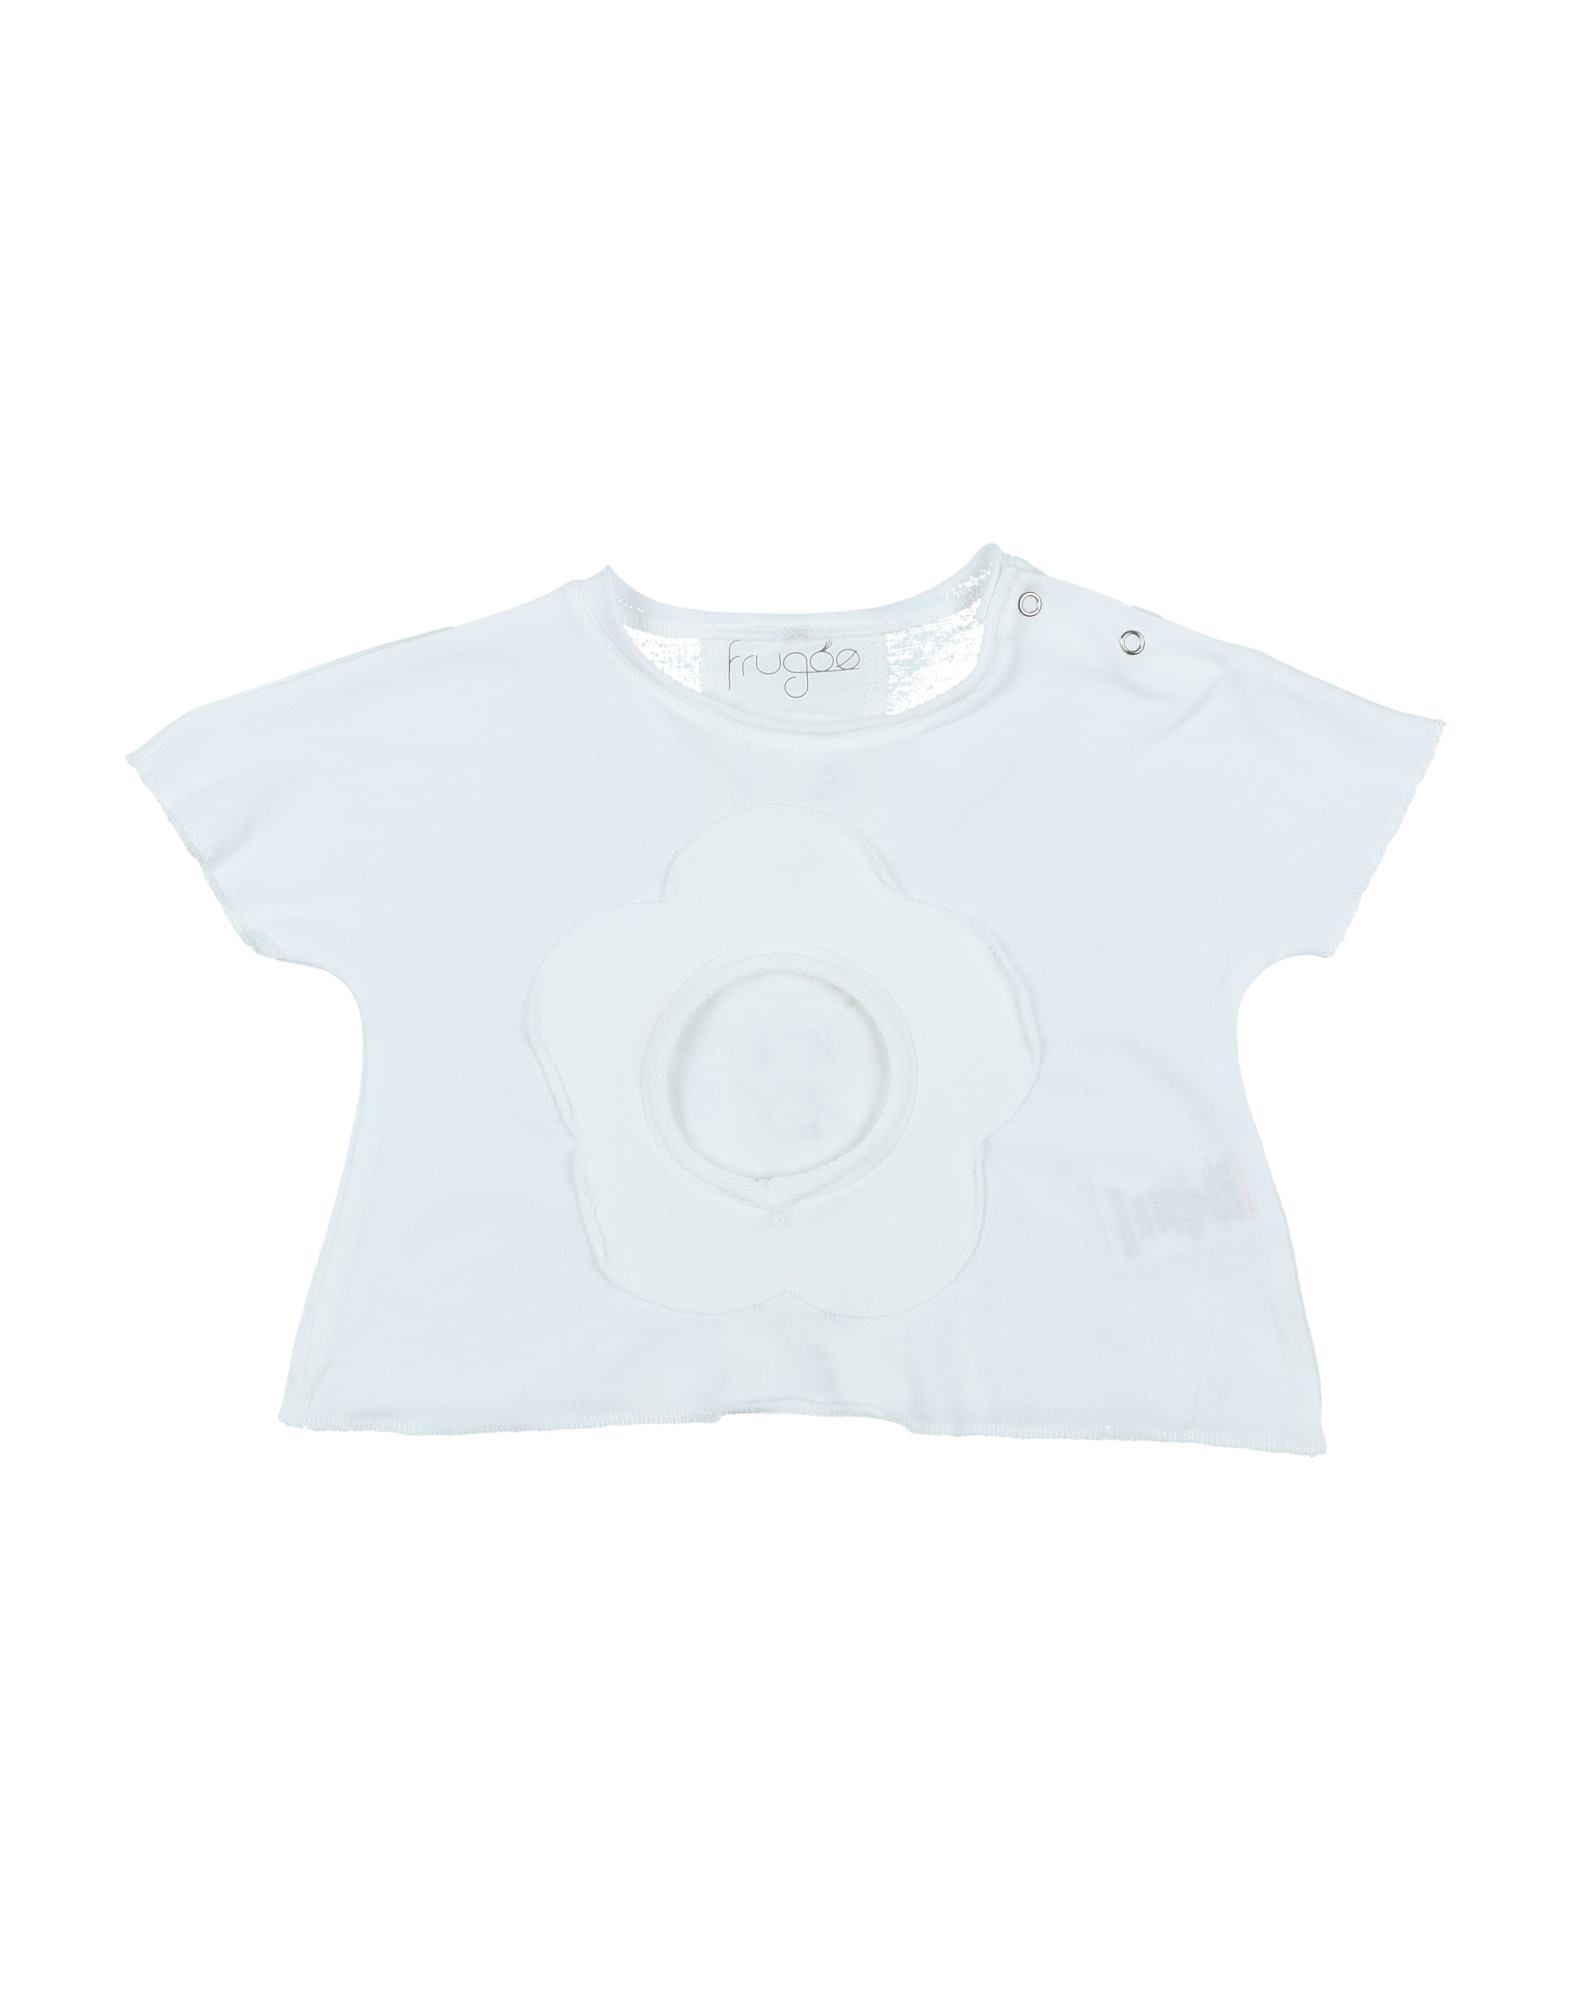 Frugoo Kids' T-shirts In White